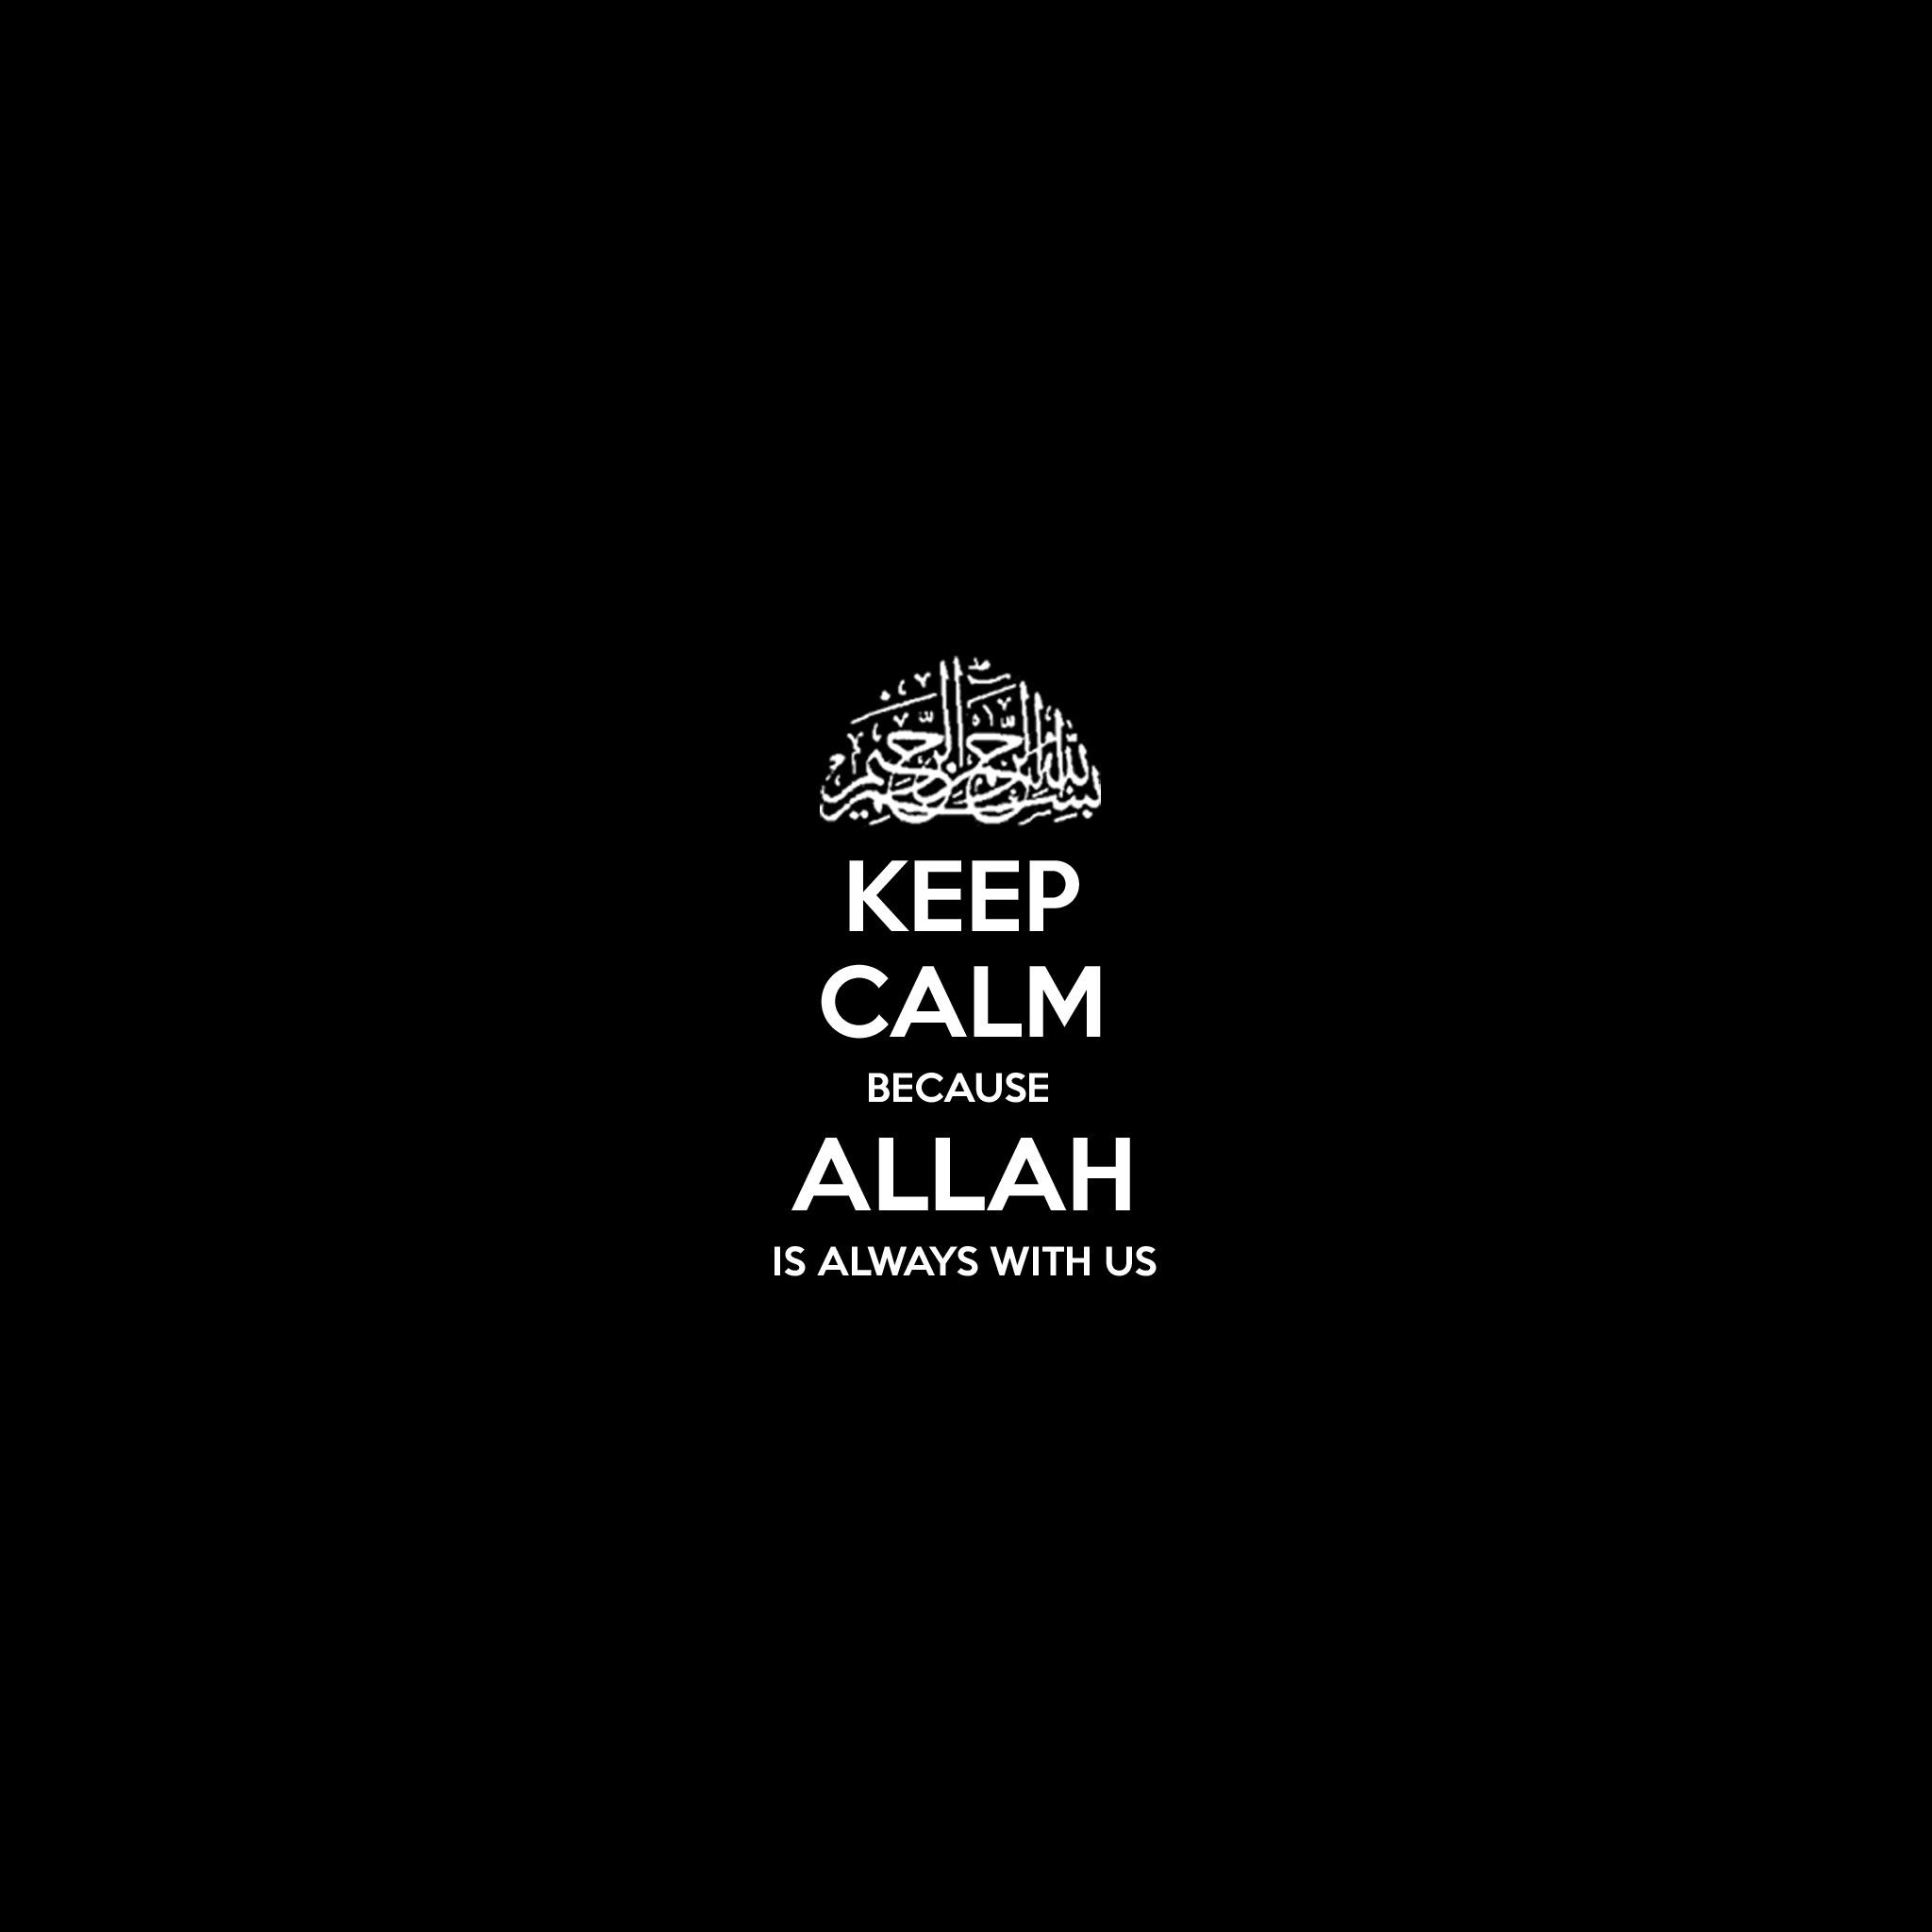 Quotes Wallpaper Hd For Laptop: Keep Calm Apple IPhone 6 Hd Wallpapers Available For Free